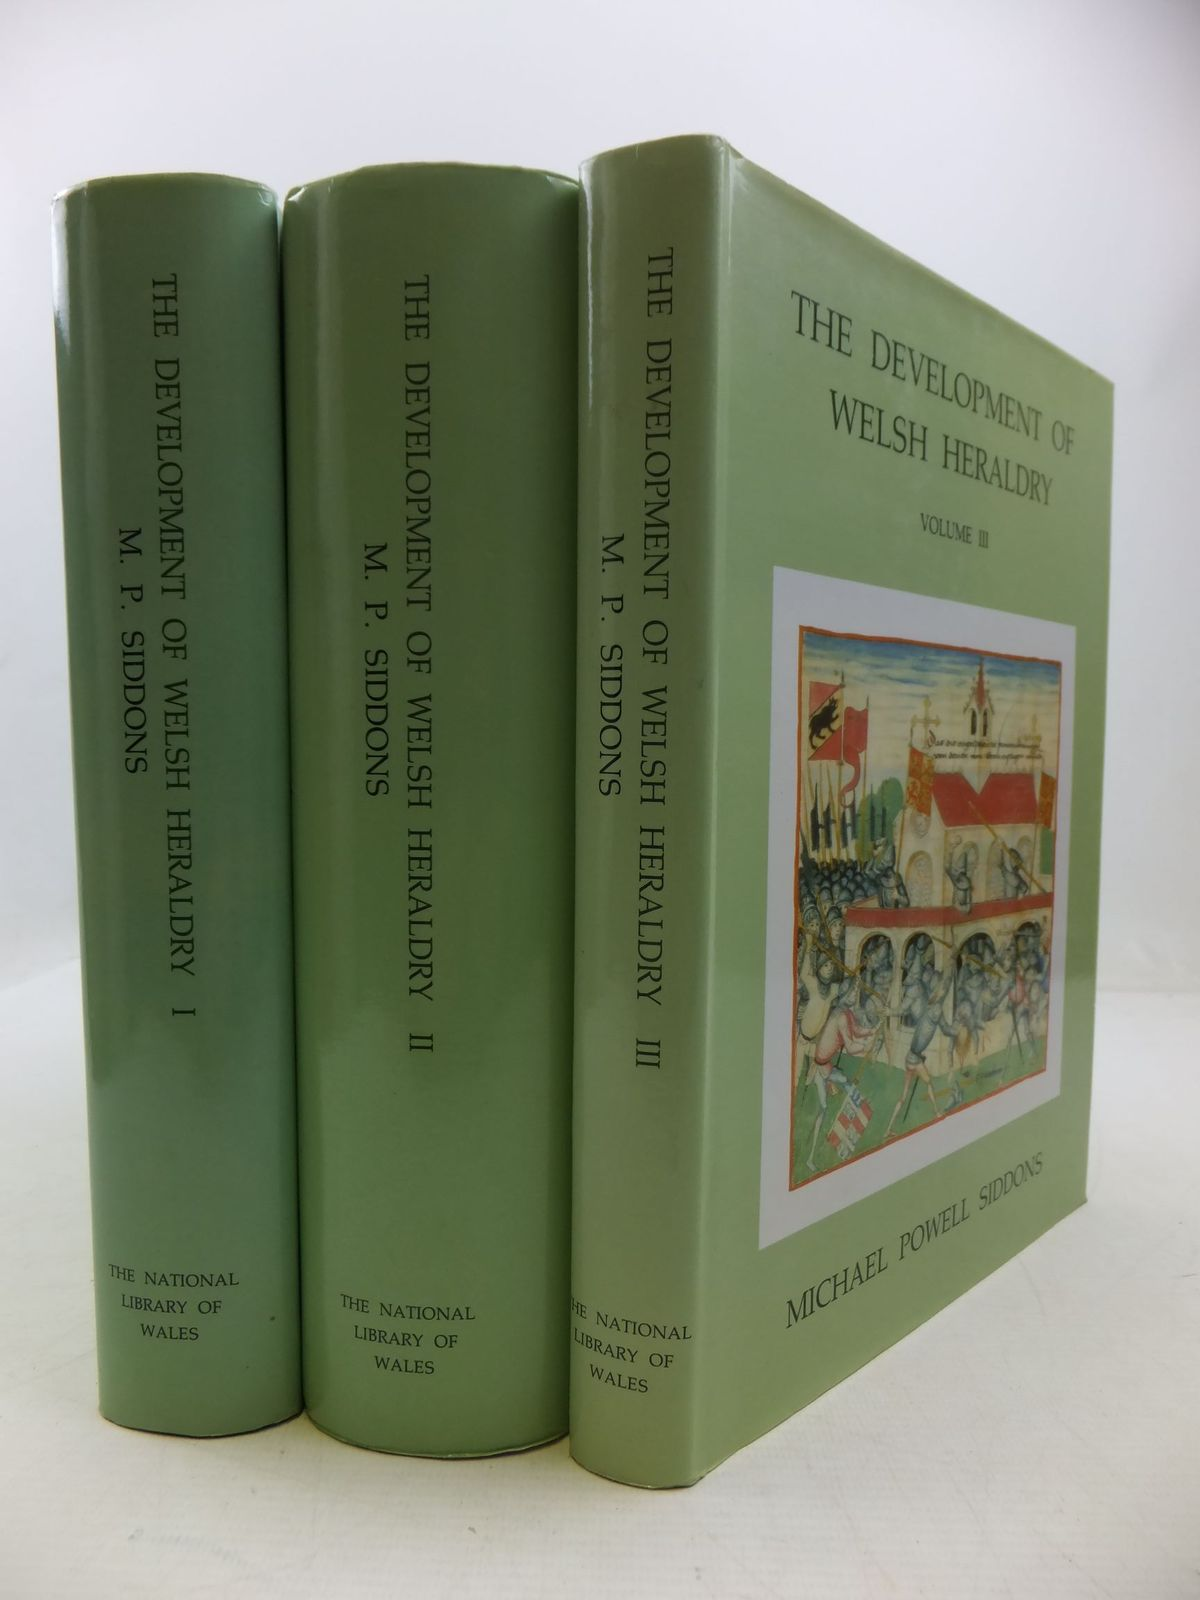 Photo of THE DEVELOPMENT OF WELSH HERALDRY (3 VOLUMES) written by Siddons, Michael Powell published by The National Library of Wales (STOCK CODE: 1709382)  for sale by Stella & Rose's Books